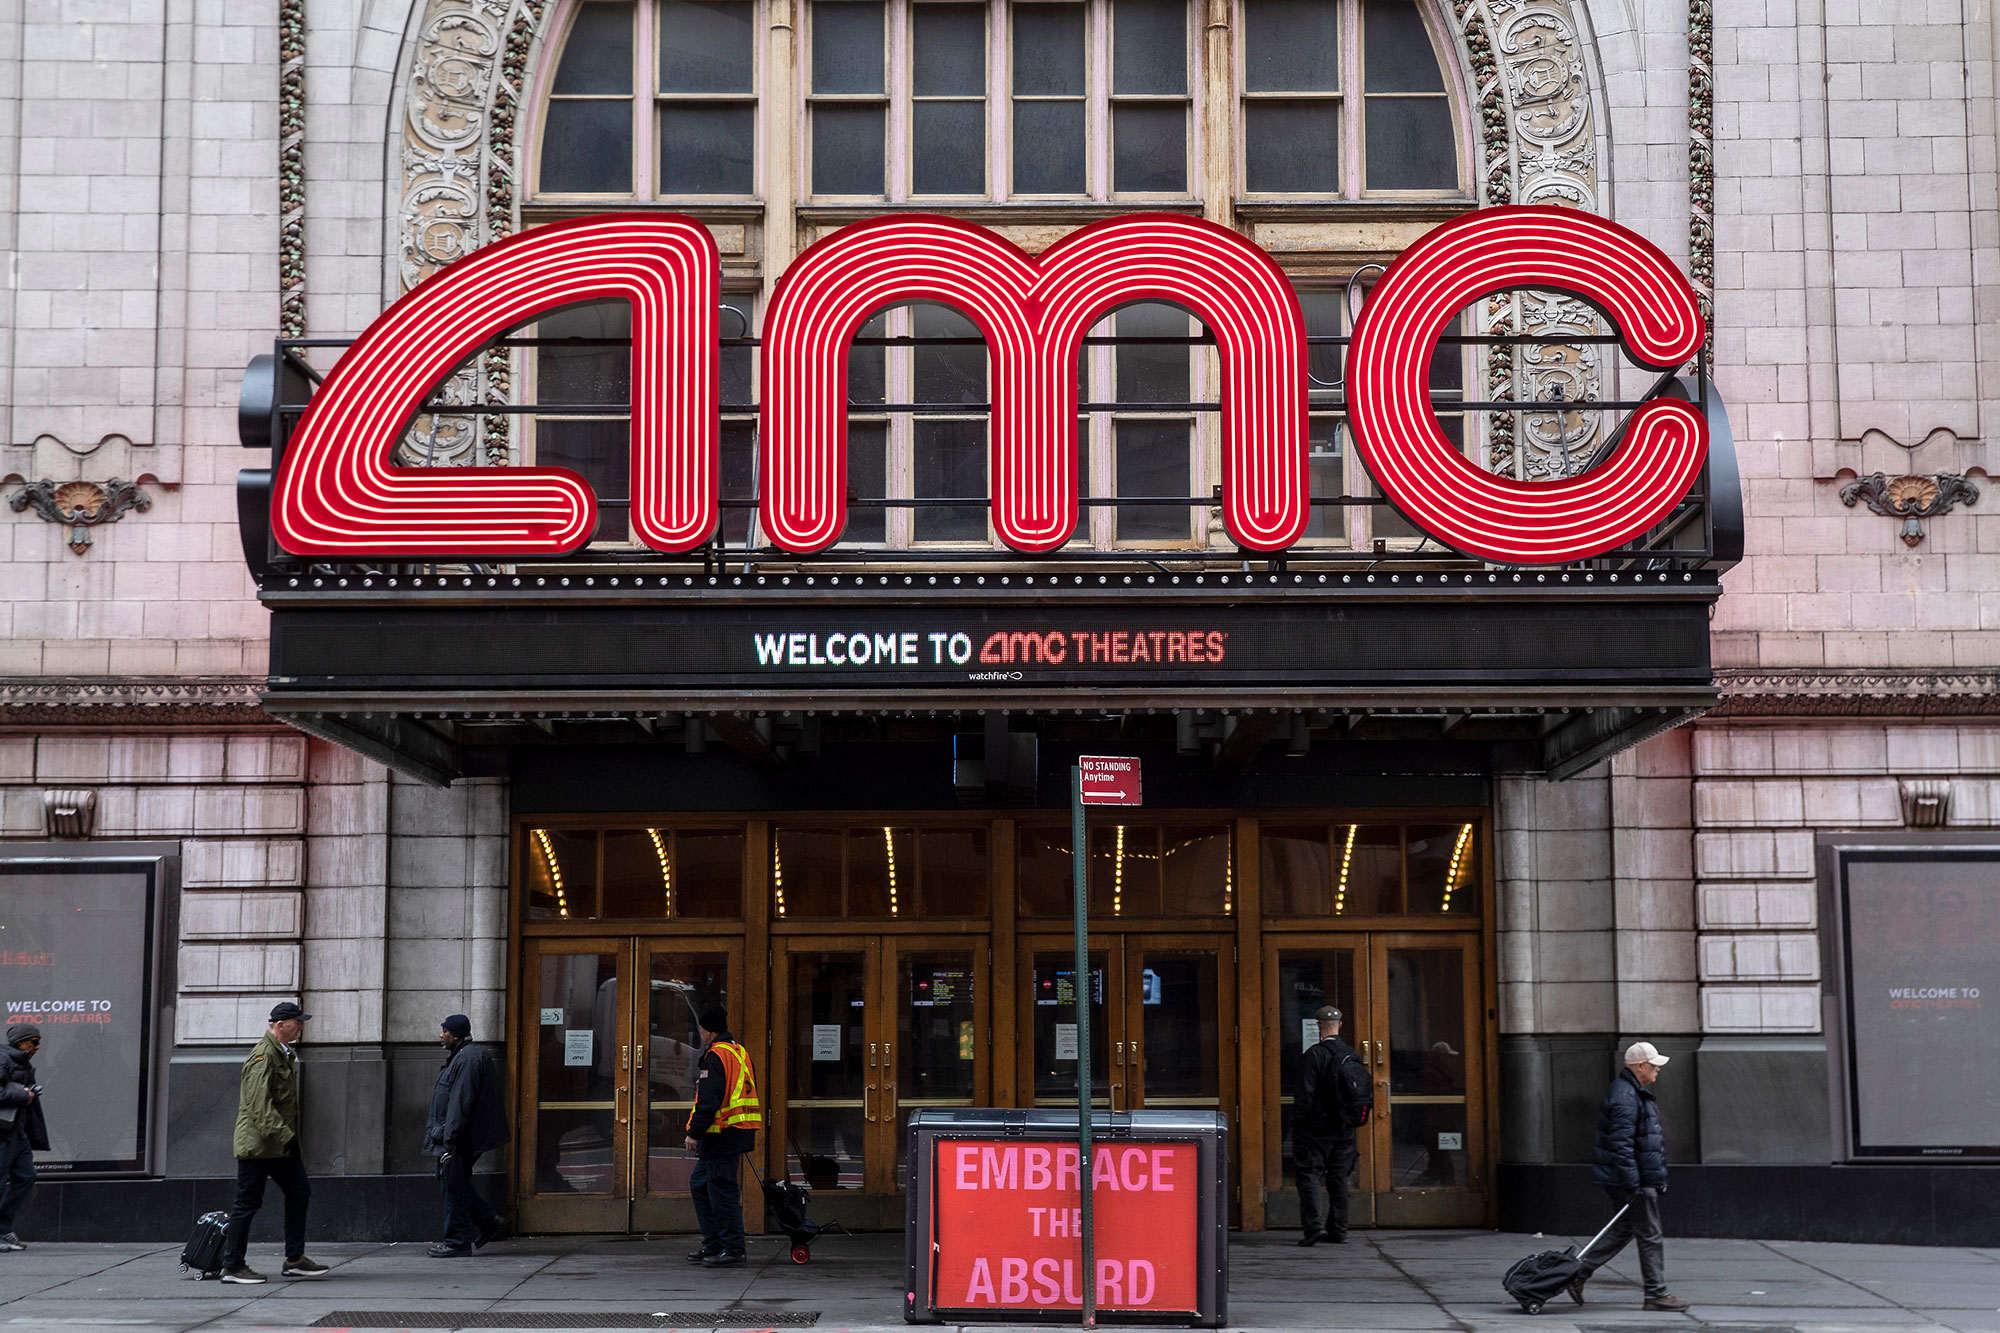 Amc Theatres To Reopen Aug 20 With 15 Cent Movie Tickets Ew Com